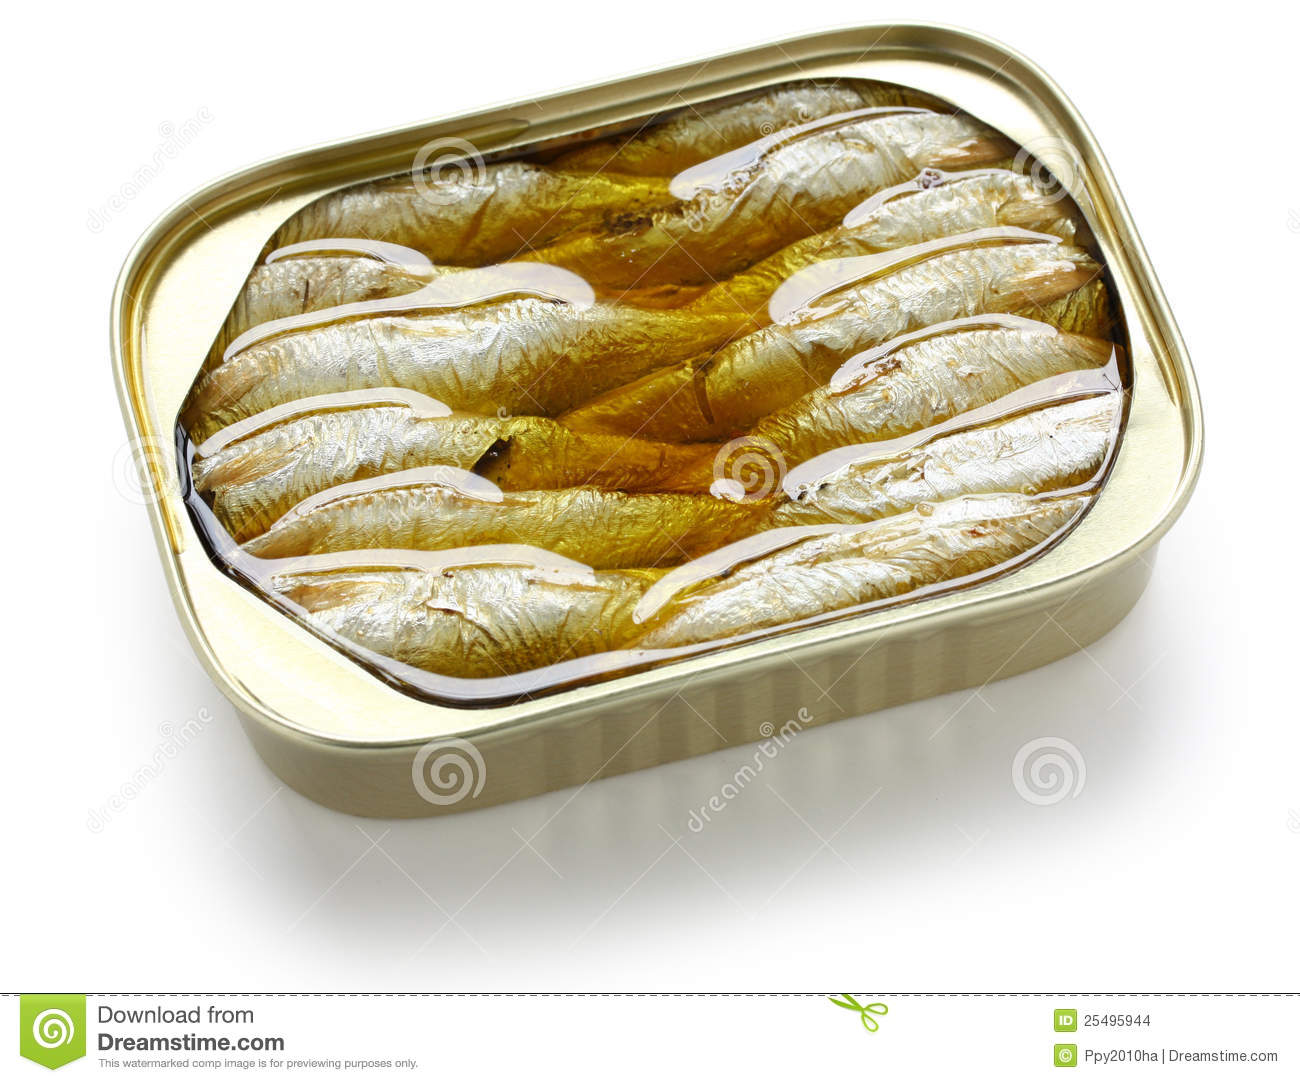 Canned Sardines In Oil Stock Images - Image: 25495944